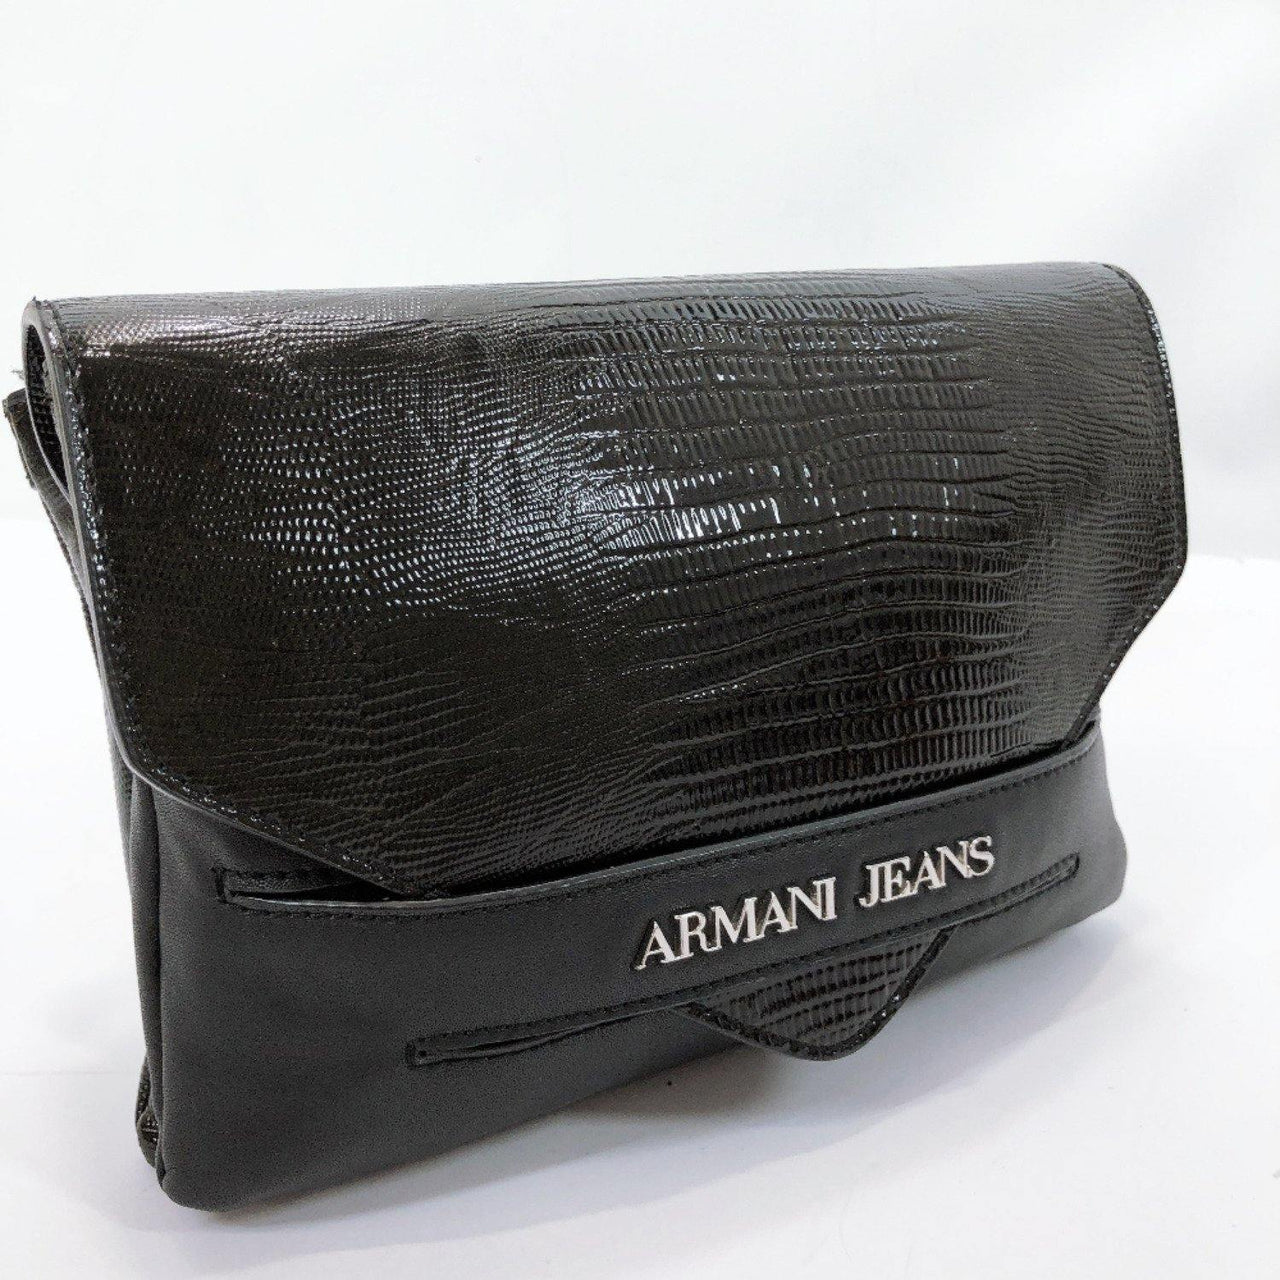 ARMANI JEANS Clutch bag B5267 Flap type Embossing Synthetic leather/PVC black Women Used